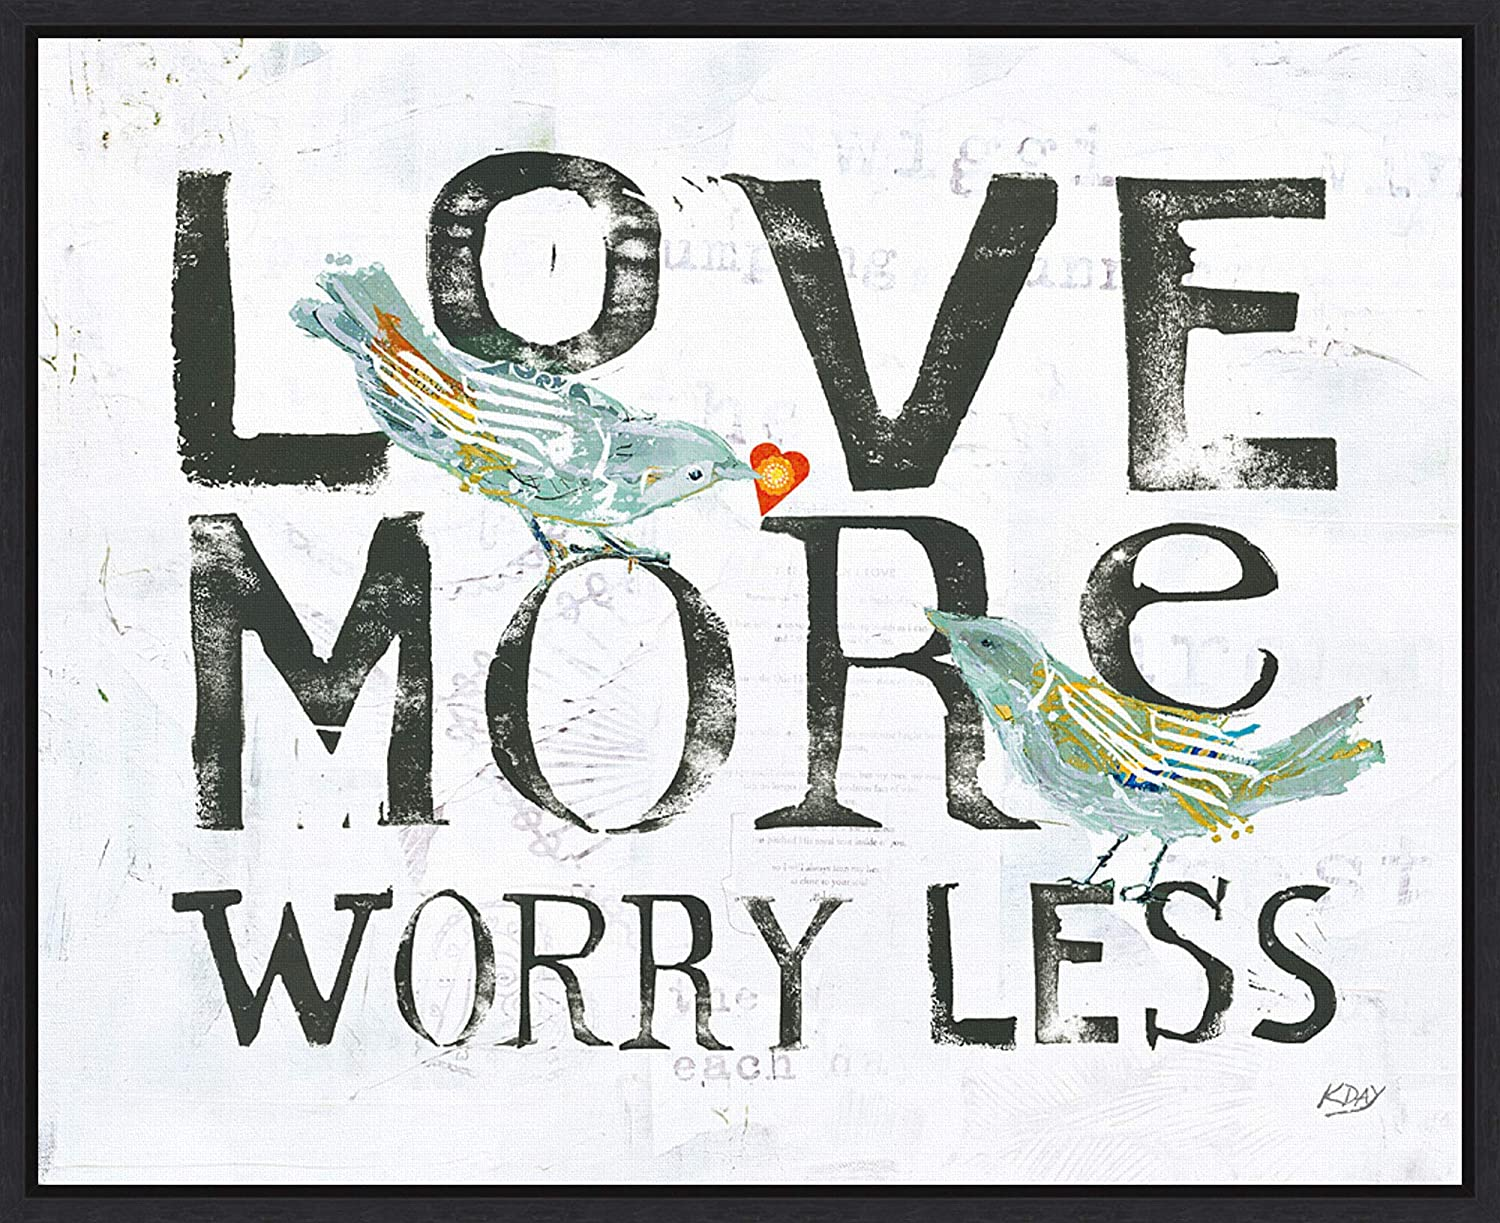 Framed Canvas Wall Art Print | Home Wall Decor Canvas Art | Love More Worry Less by Kellie Day | Modern Decor | Stretched Canvas Prints 19.62 x 16.00 in.